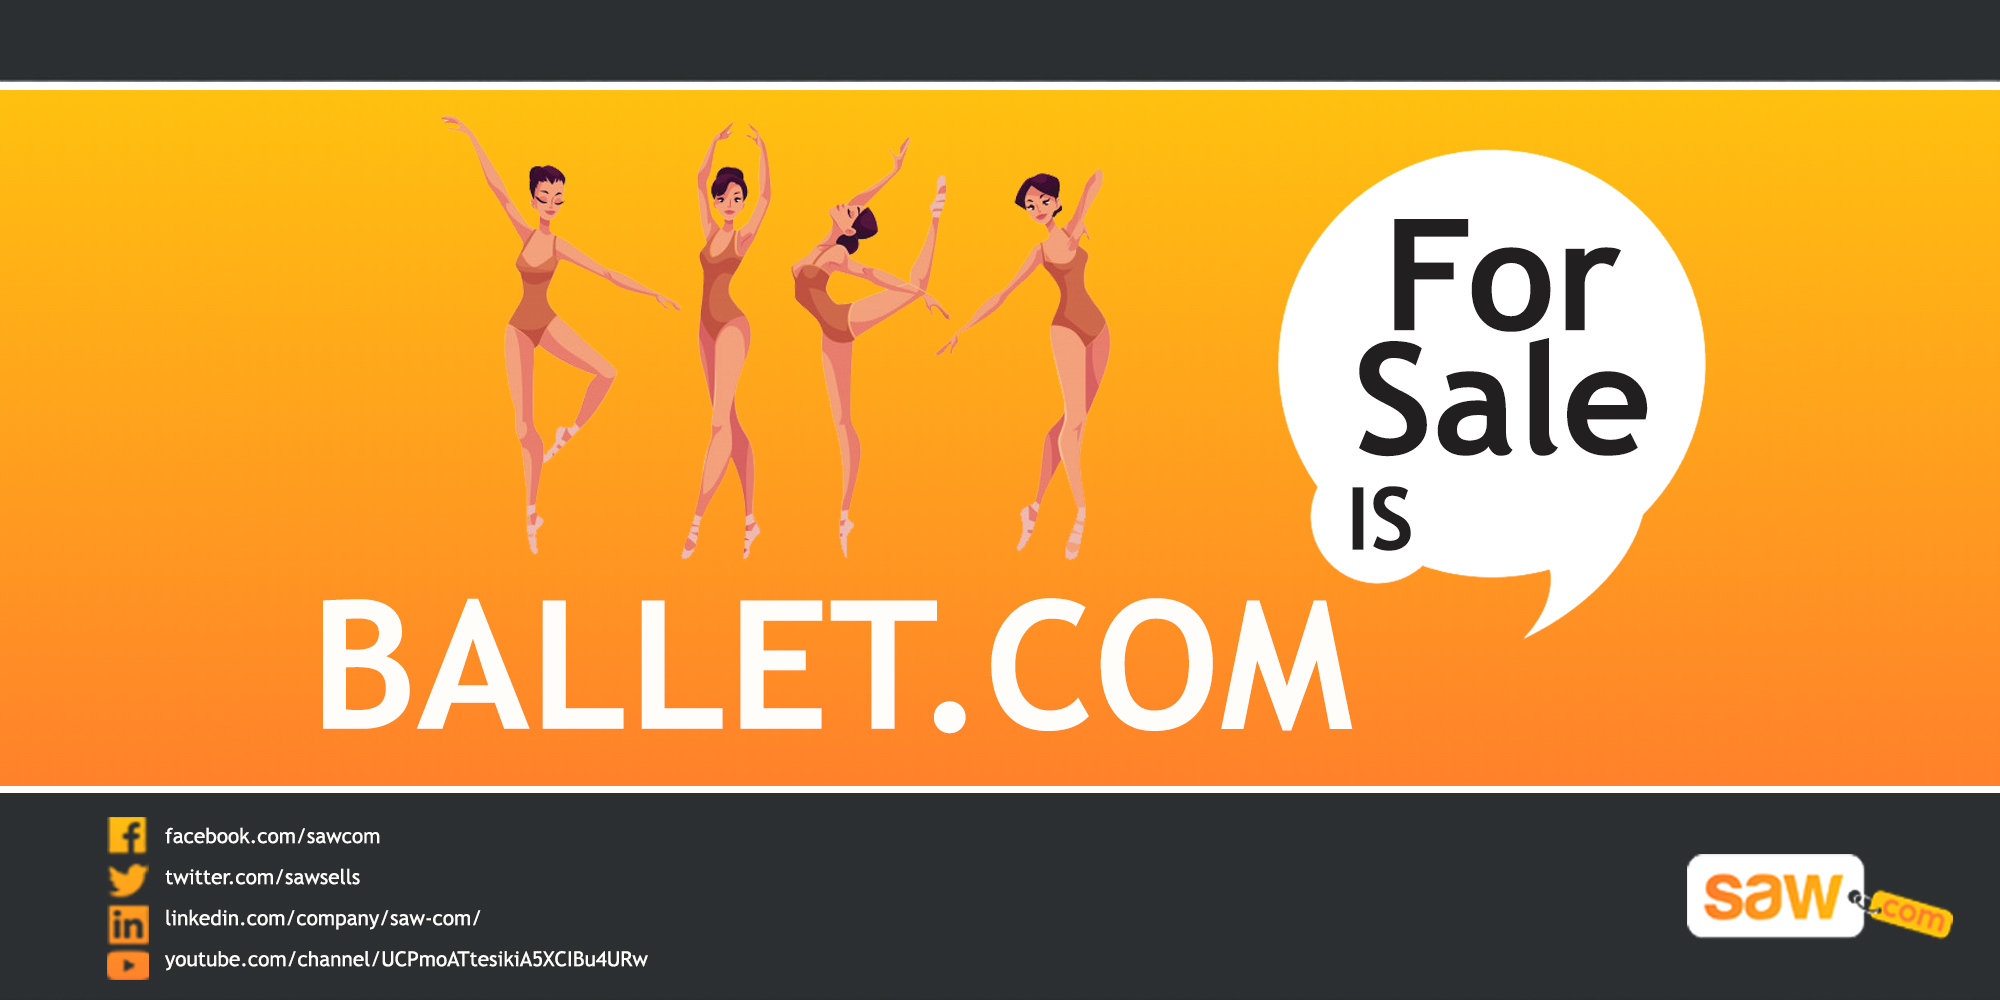 Saw Video – Ballet.com is For Sale!